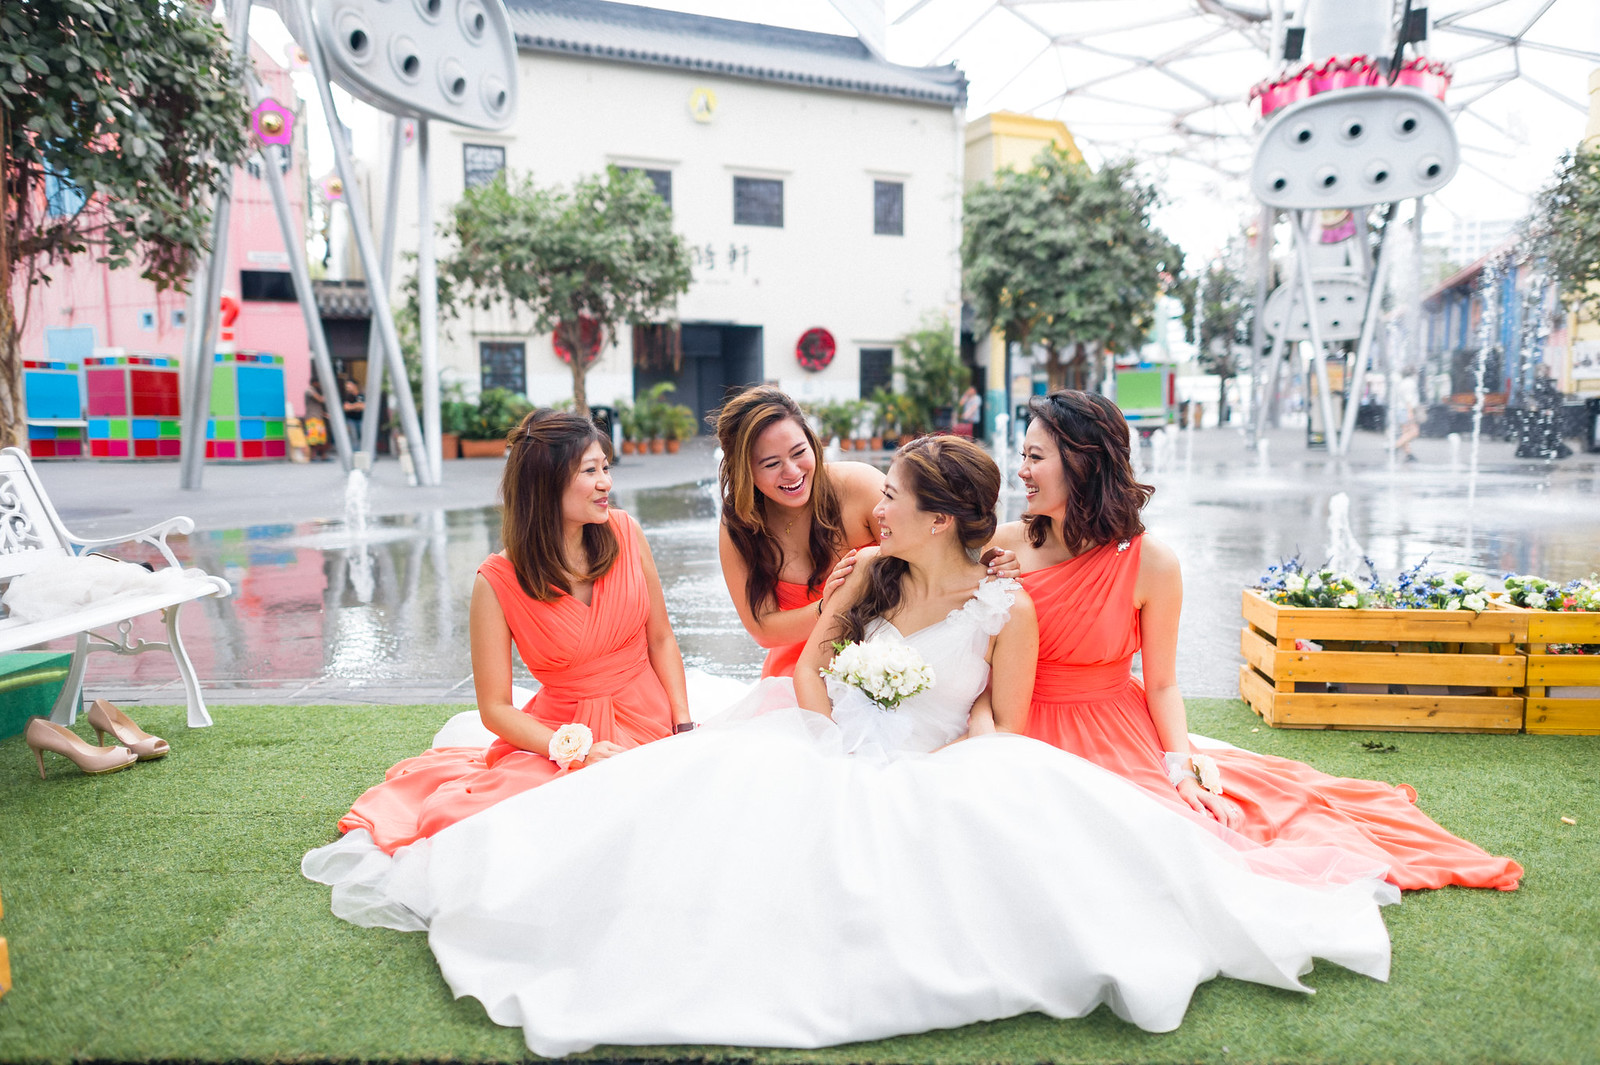 Multifolds, actual day wedding, wedding day, marriage, Shane and Nikki, church wedding, Amanda Lee Weddings, Catholic church, wedding vow, wedding ring, gown, The bridal party, Clarke quay